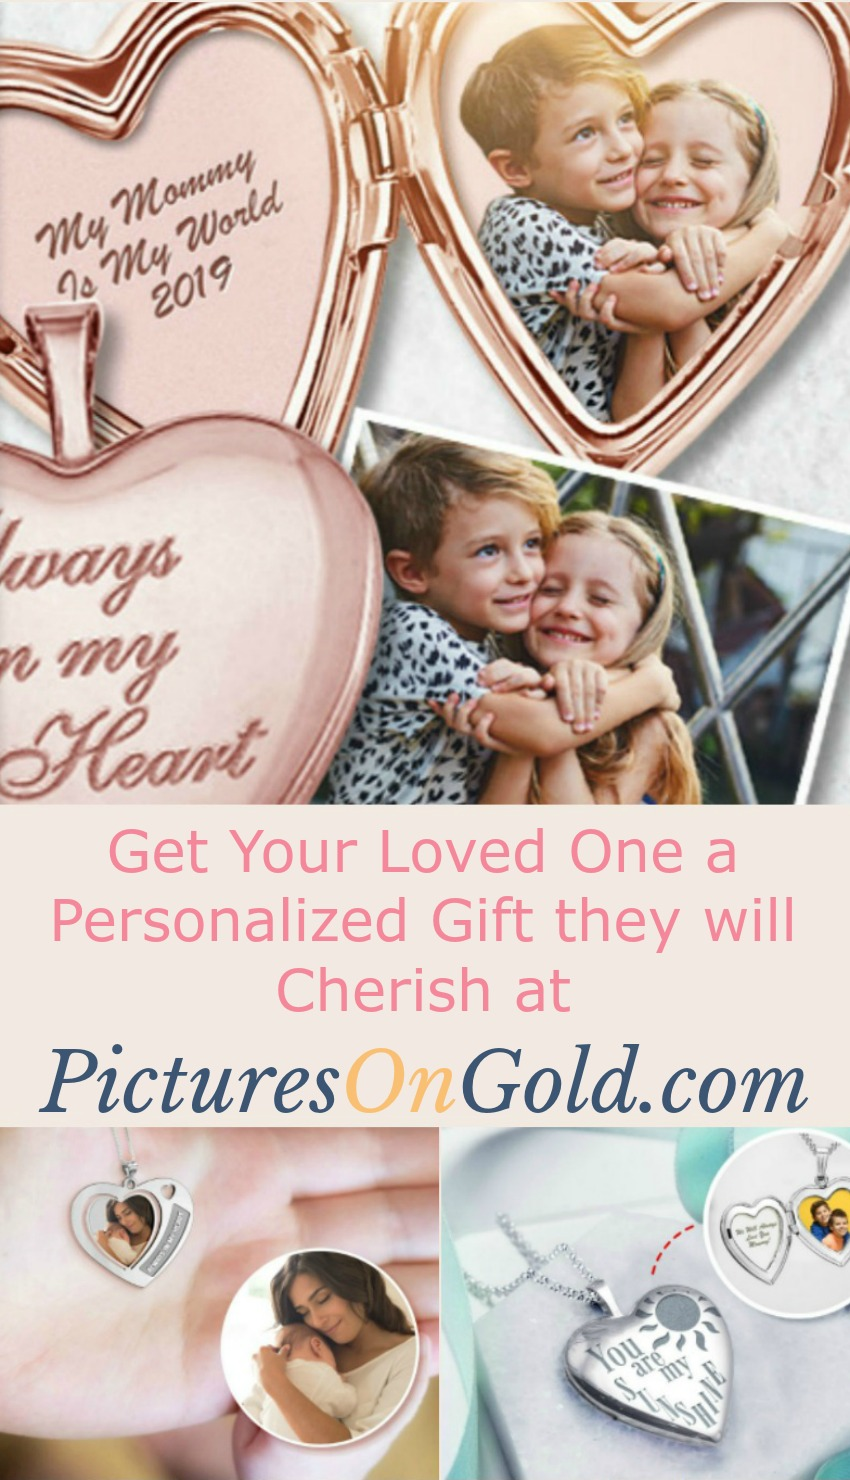 Get Your Loved One a Personalized Gift they will Cherish at PicturesOnGold.com #MegaChristmas19